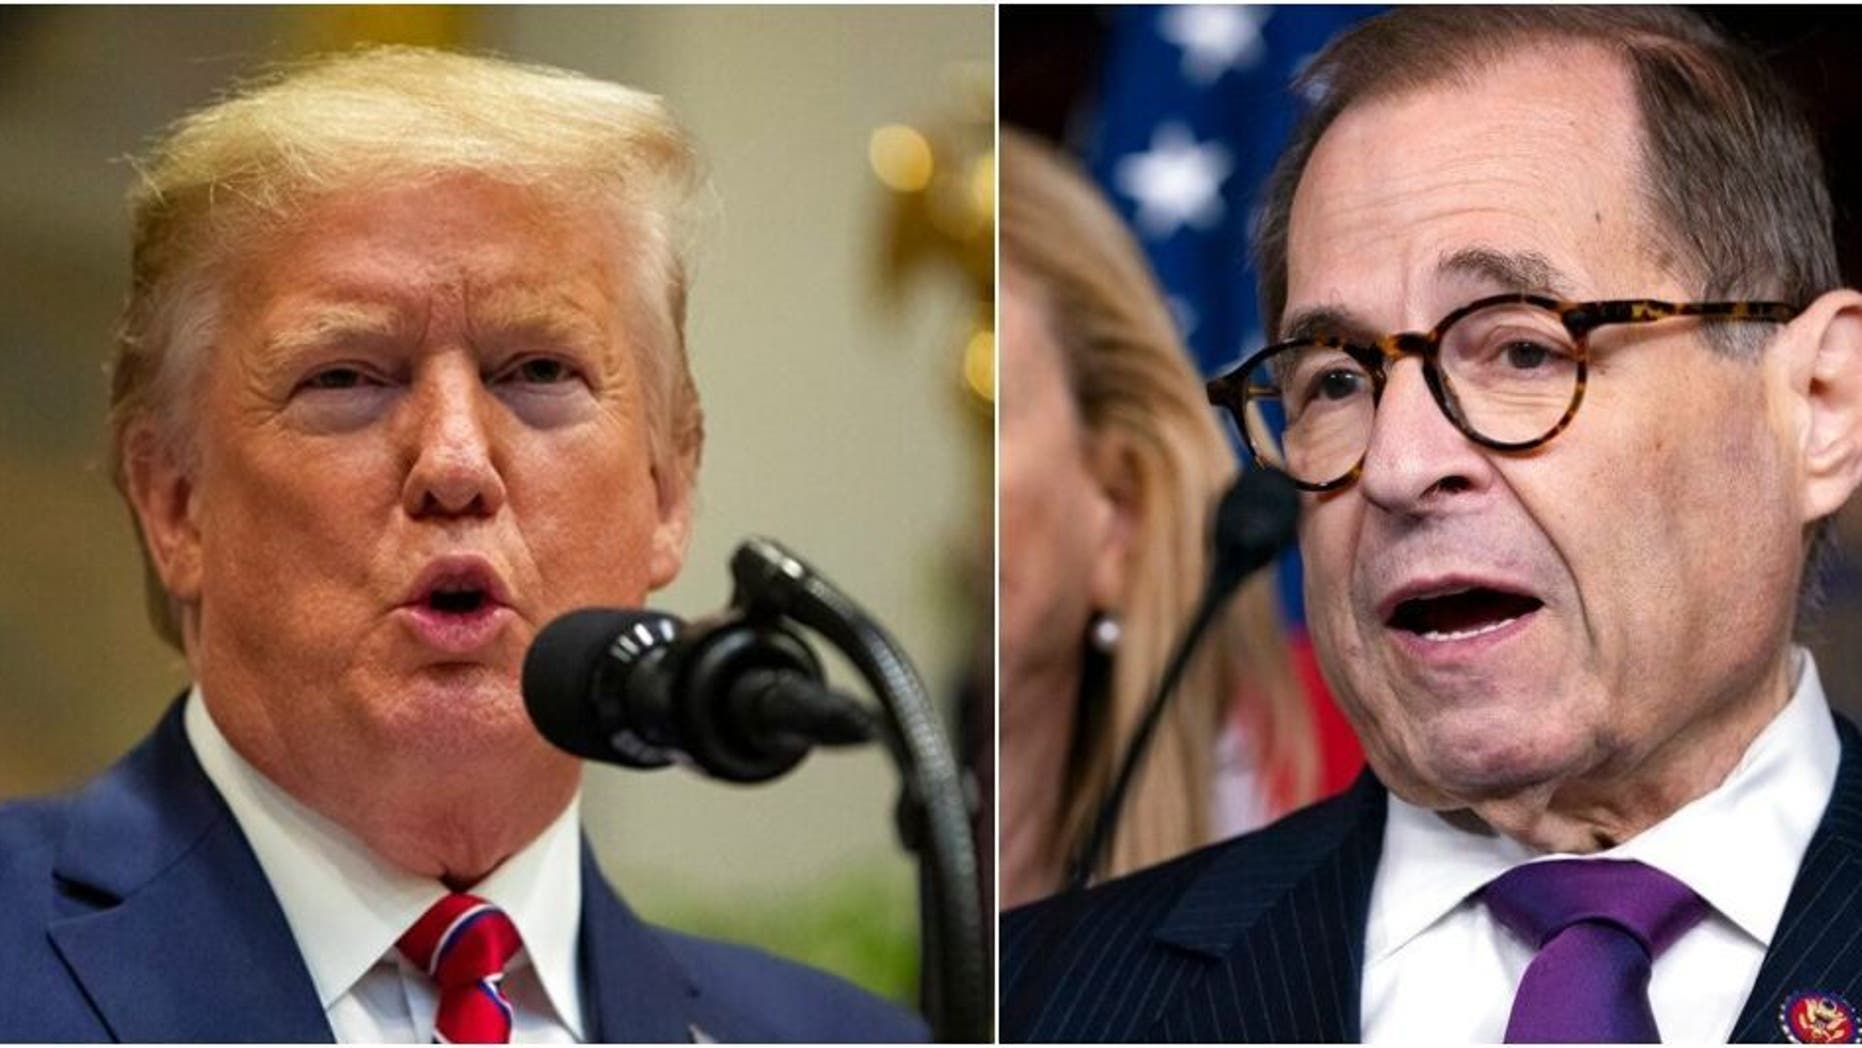 Westlake Legal Group TrumpNadler121619 House Judiciary Committee calls for Trump's removal in 658-page impeachment report; fox-news/columns/fox-news-first fox news fnc/us fnc article 762fa7fd-fa21-50a6-bf03-5adc2efd826d